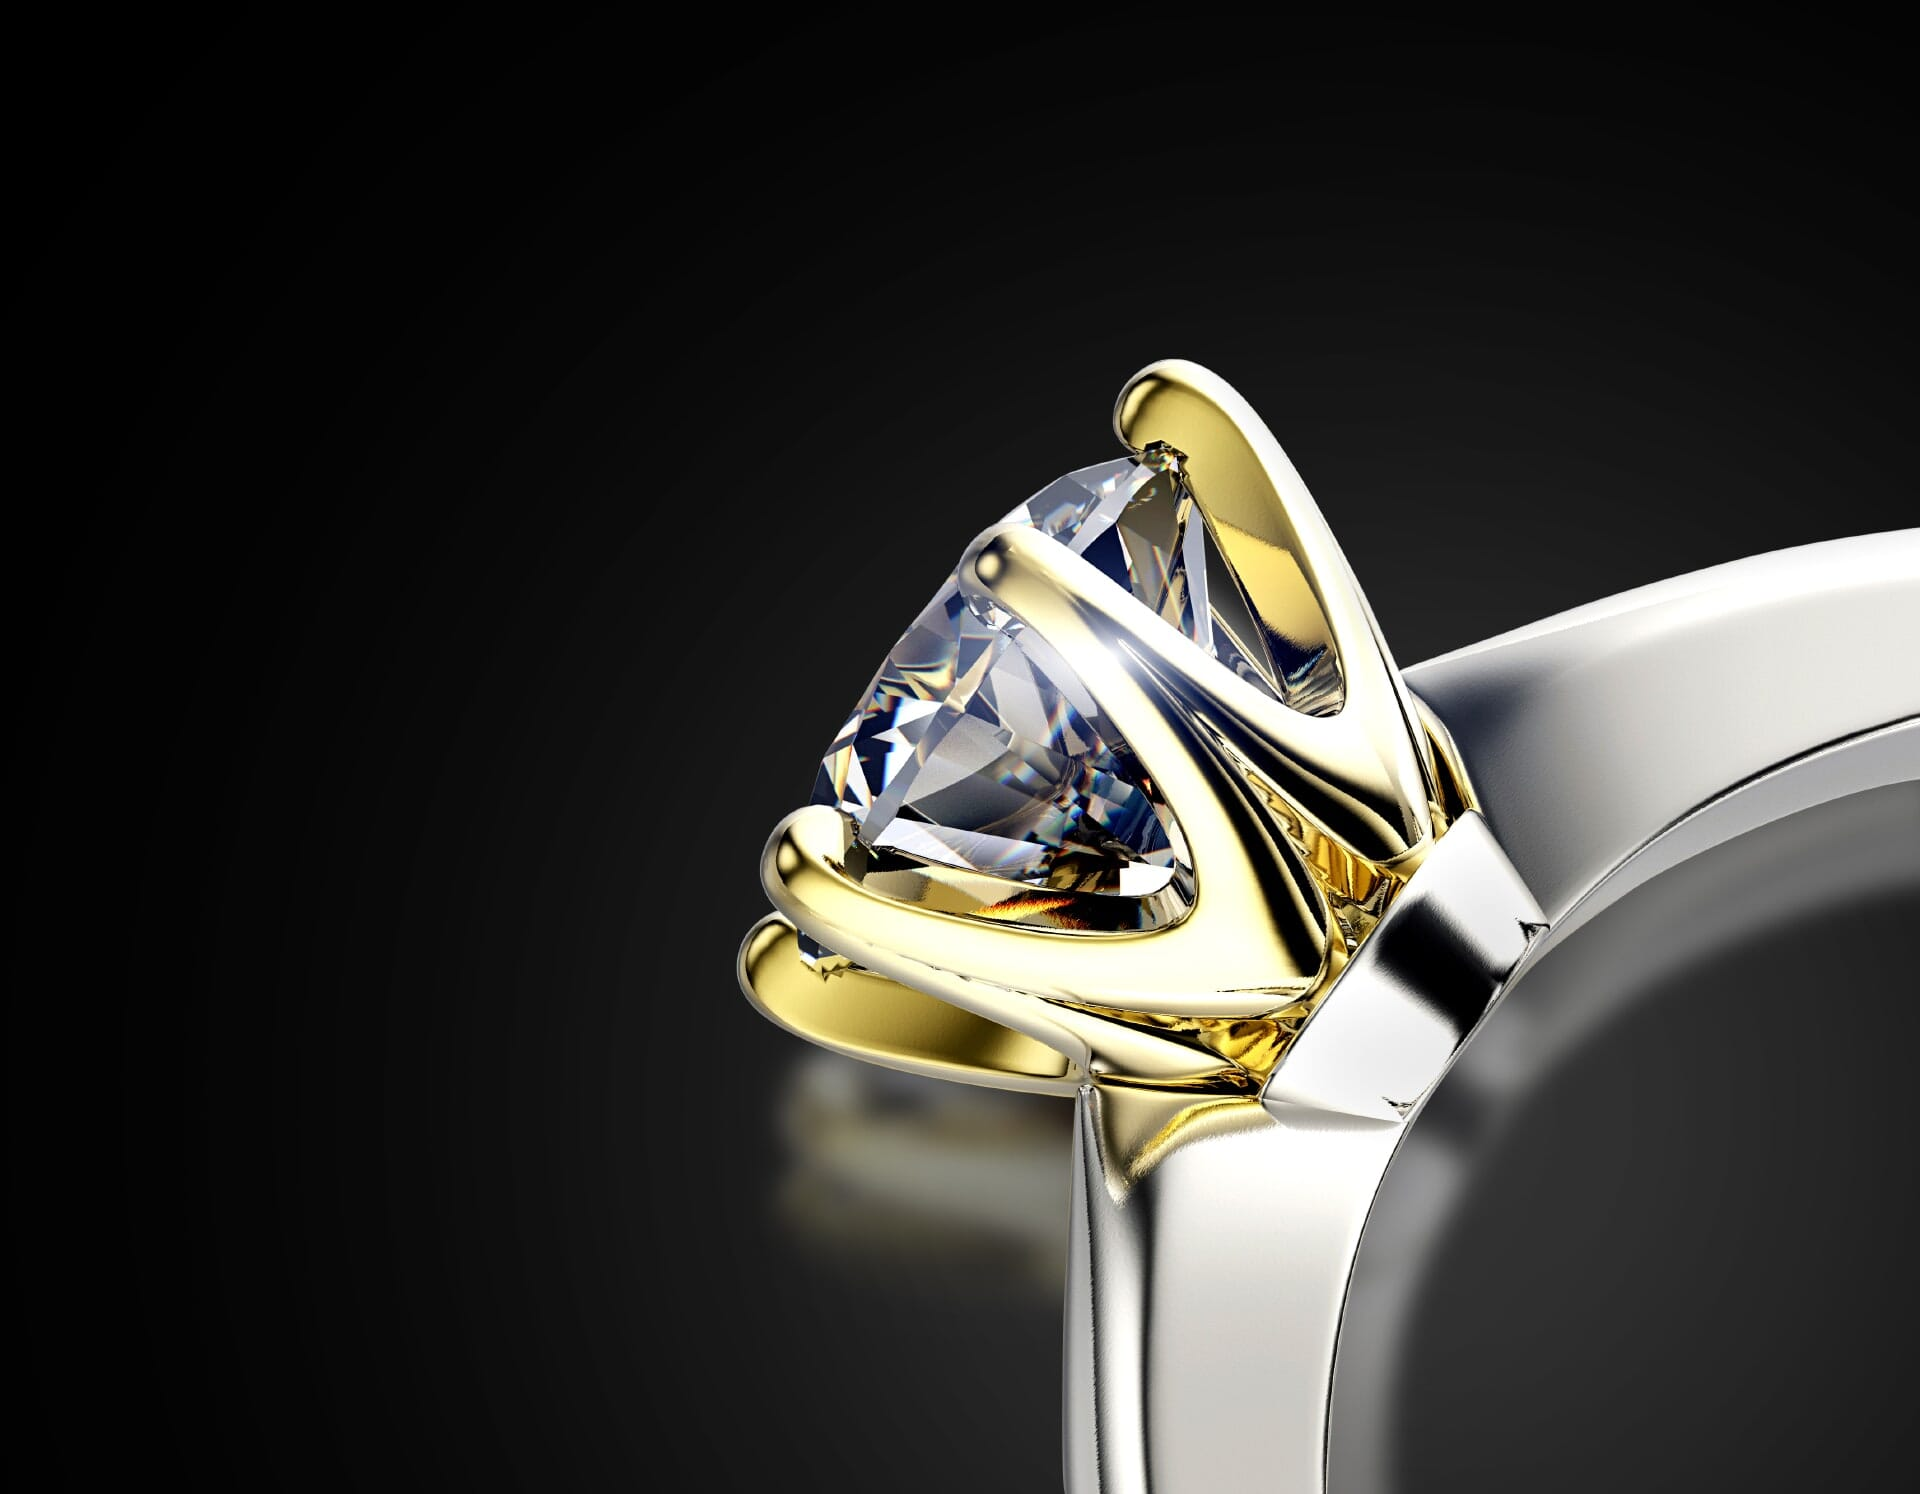 Jewelry image retouching: how to retouch the back shanks of the ring